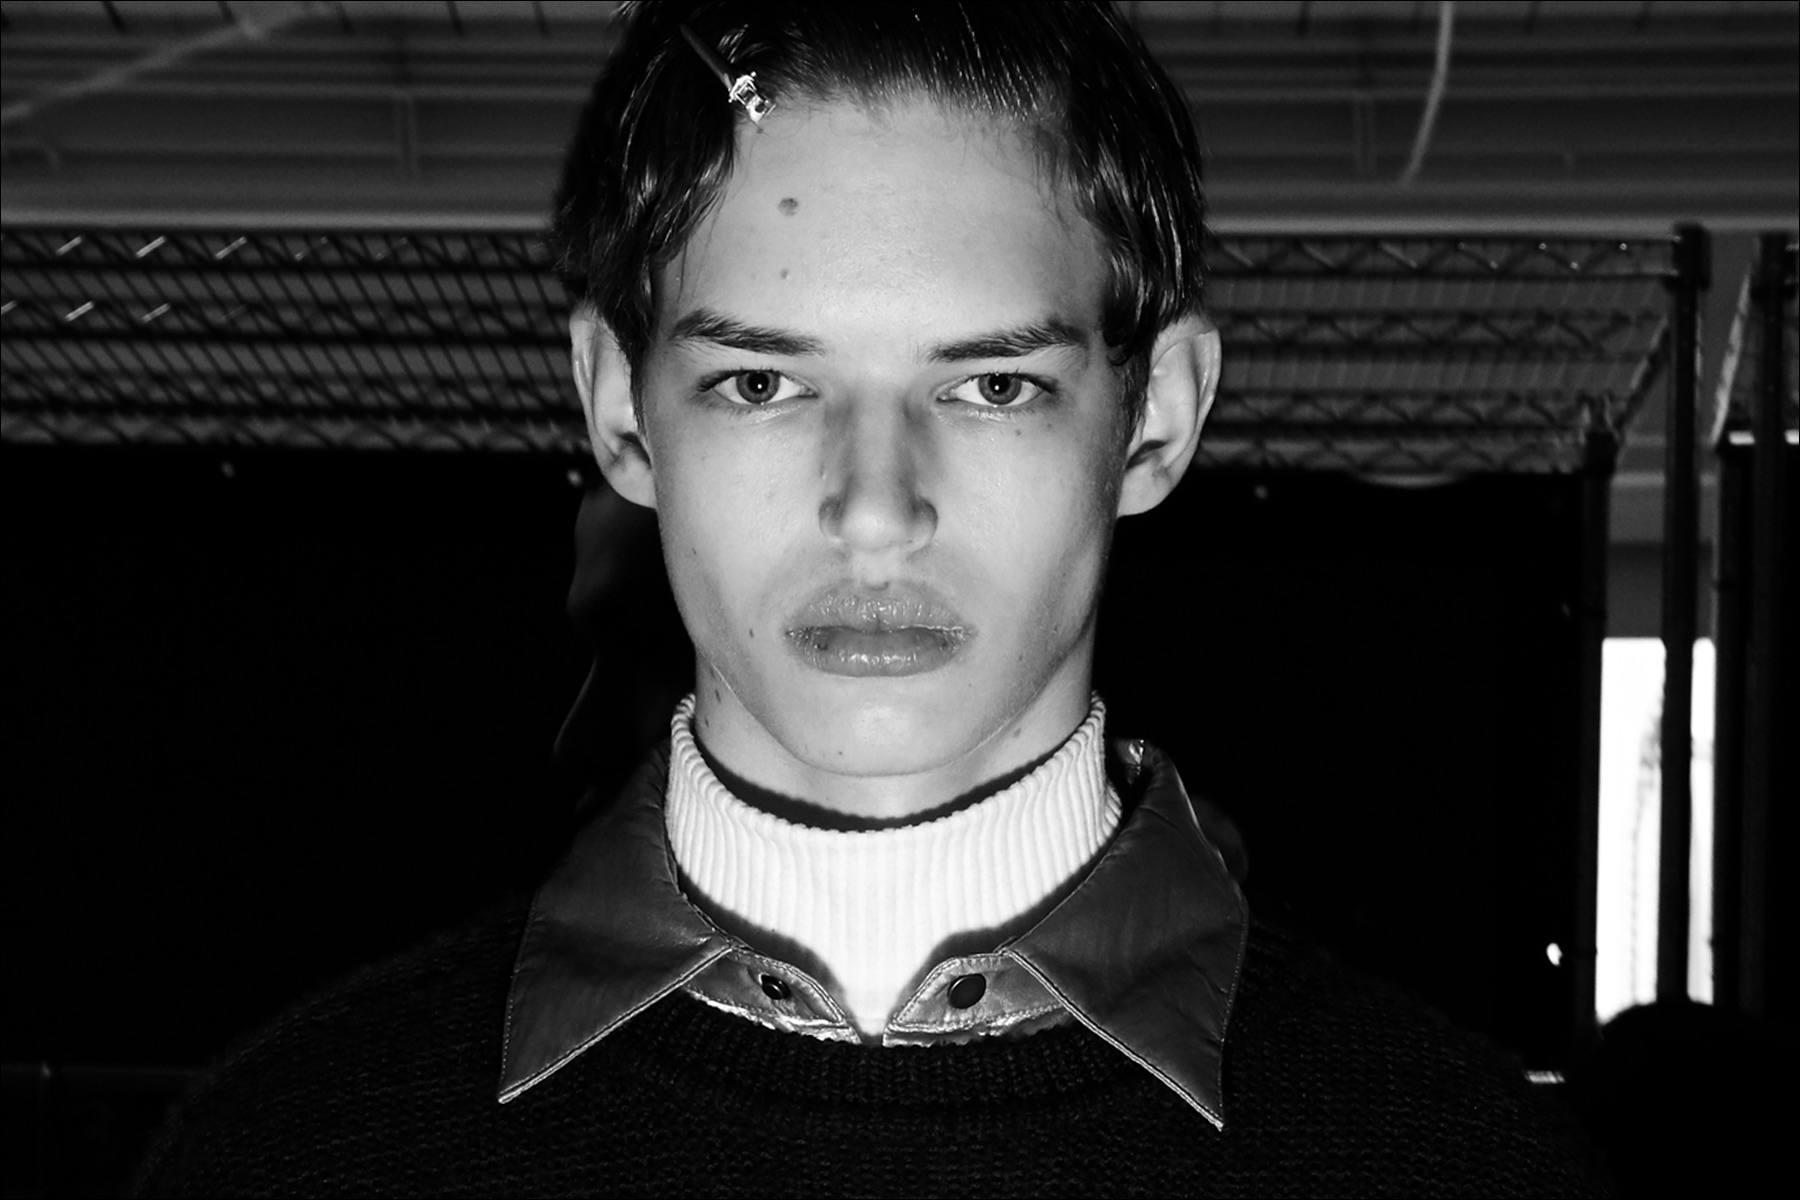 Male model Maxwell snapped backstage at Feng Chen Wang for Fall 2018. Photography by Alexander Thompson for Ponyboy magazine.